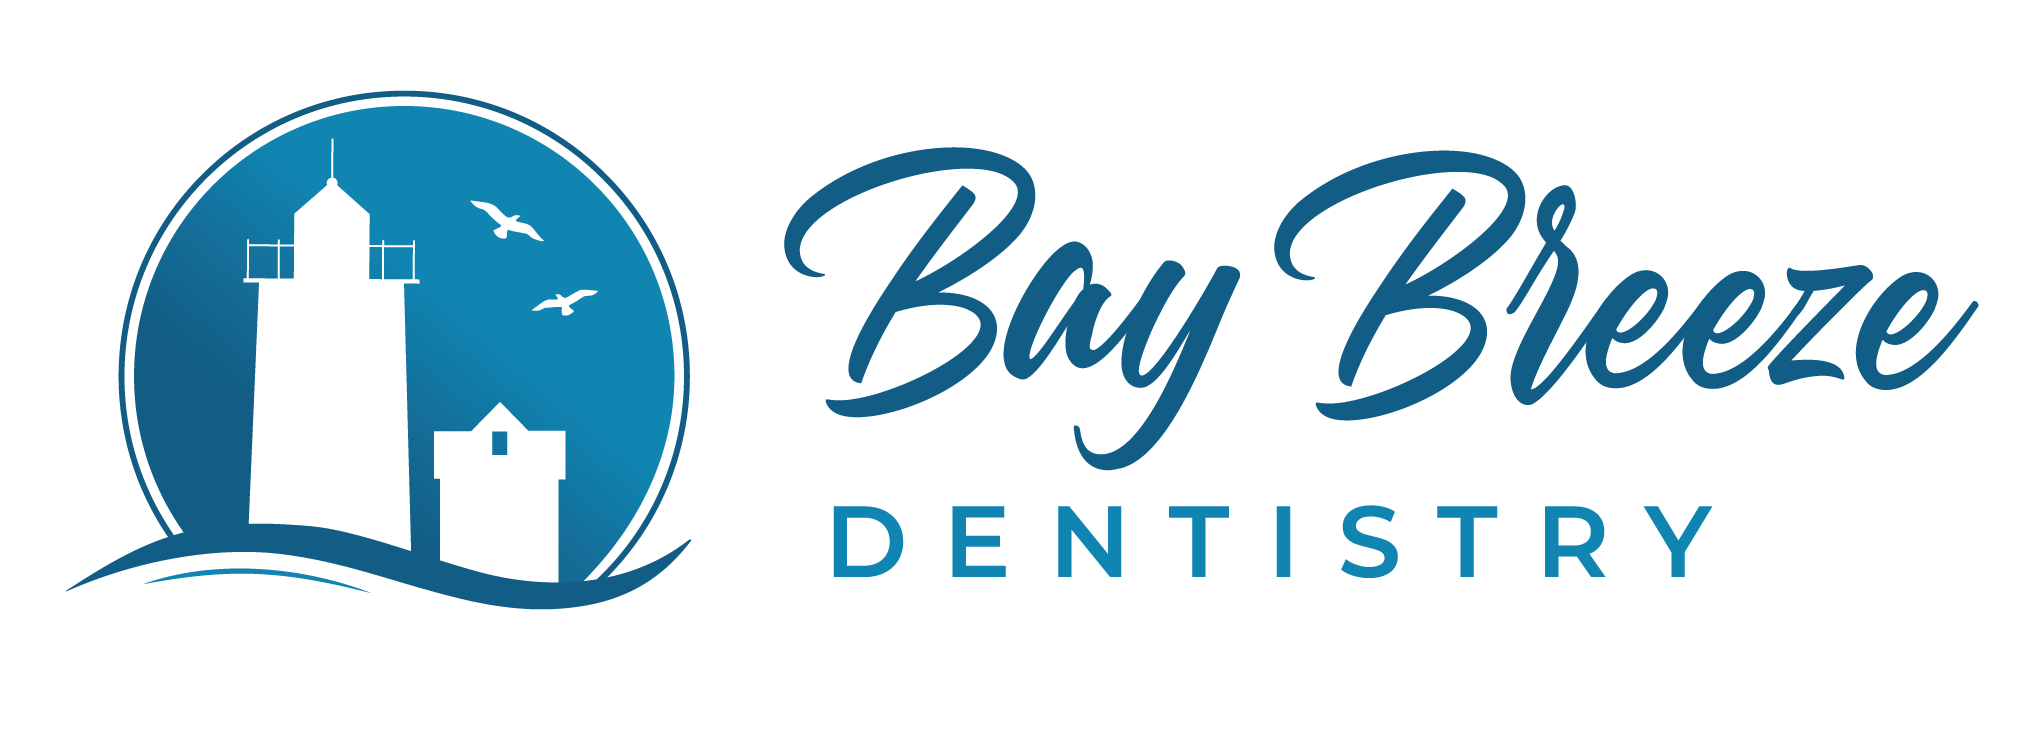 Bay Breeze Dentistry Logo